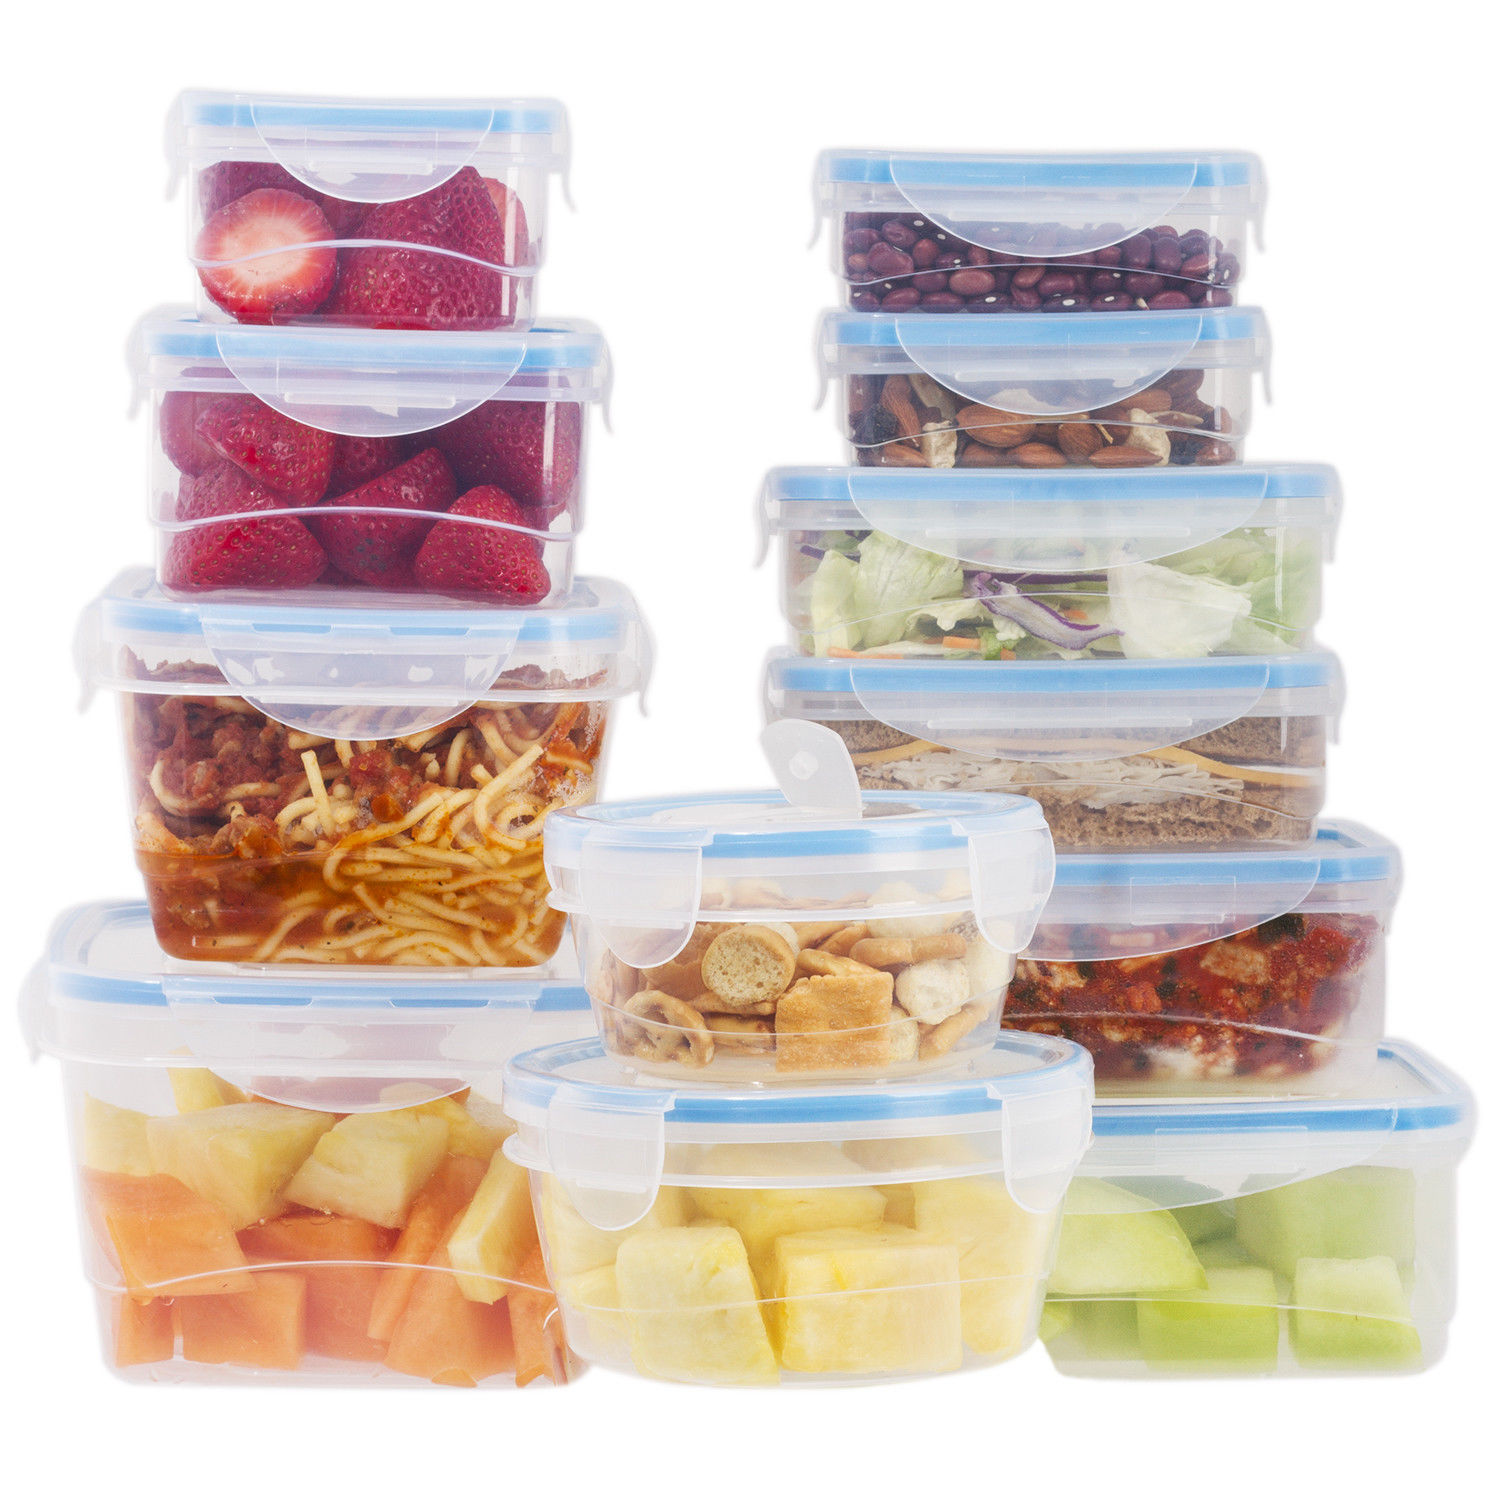 24 Pcs Plastic Food Storage Containers Set With Blue Air Tight Locking Lids 1